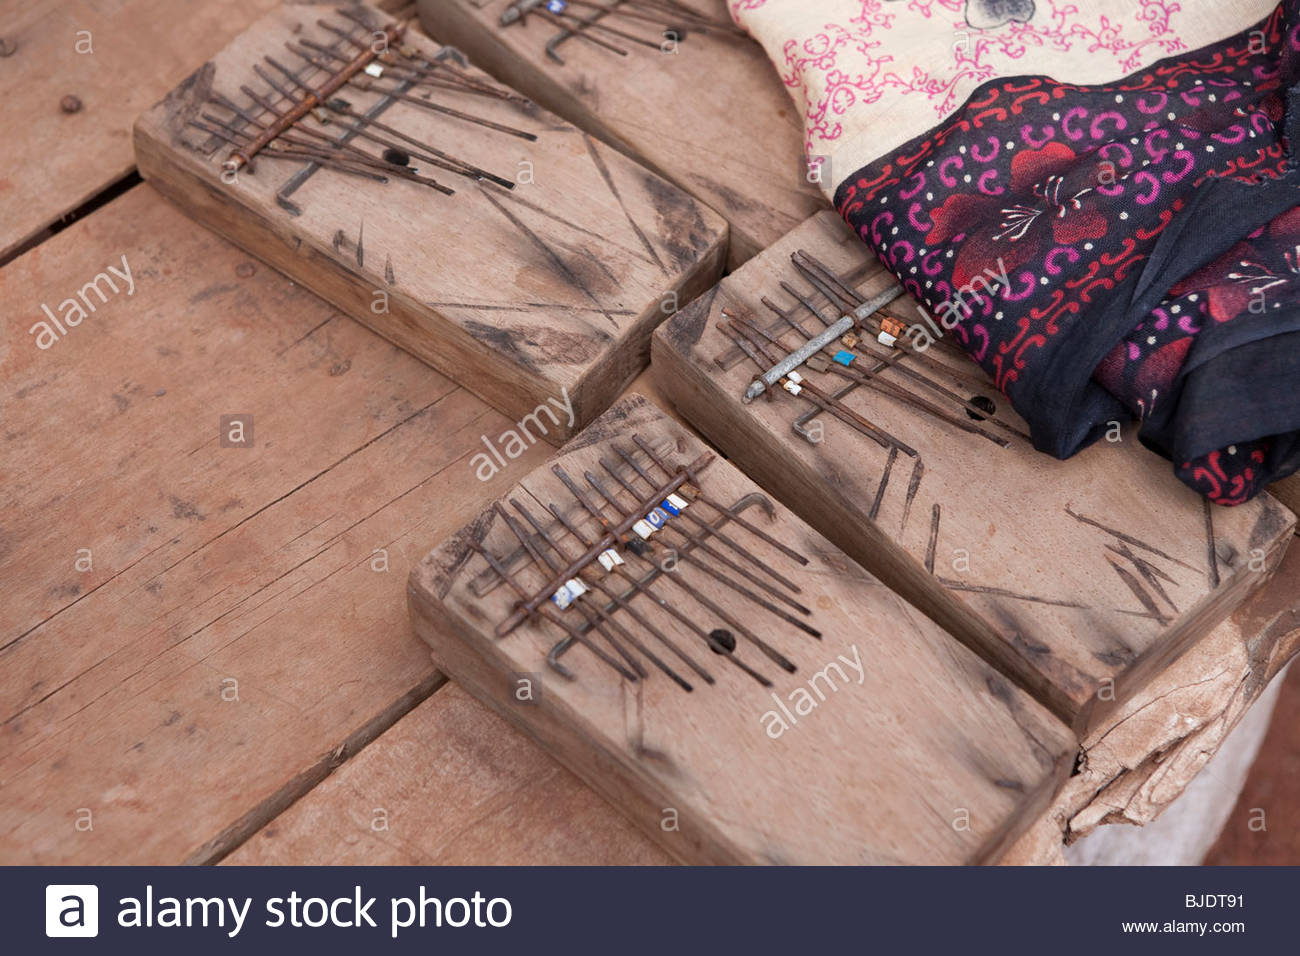 Primitive african music instruments. Tanzania. - Stock Image